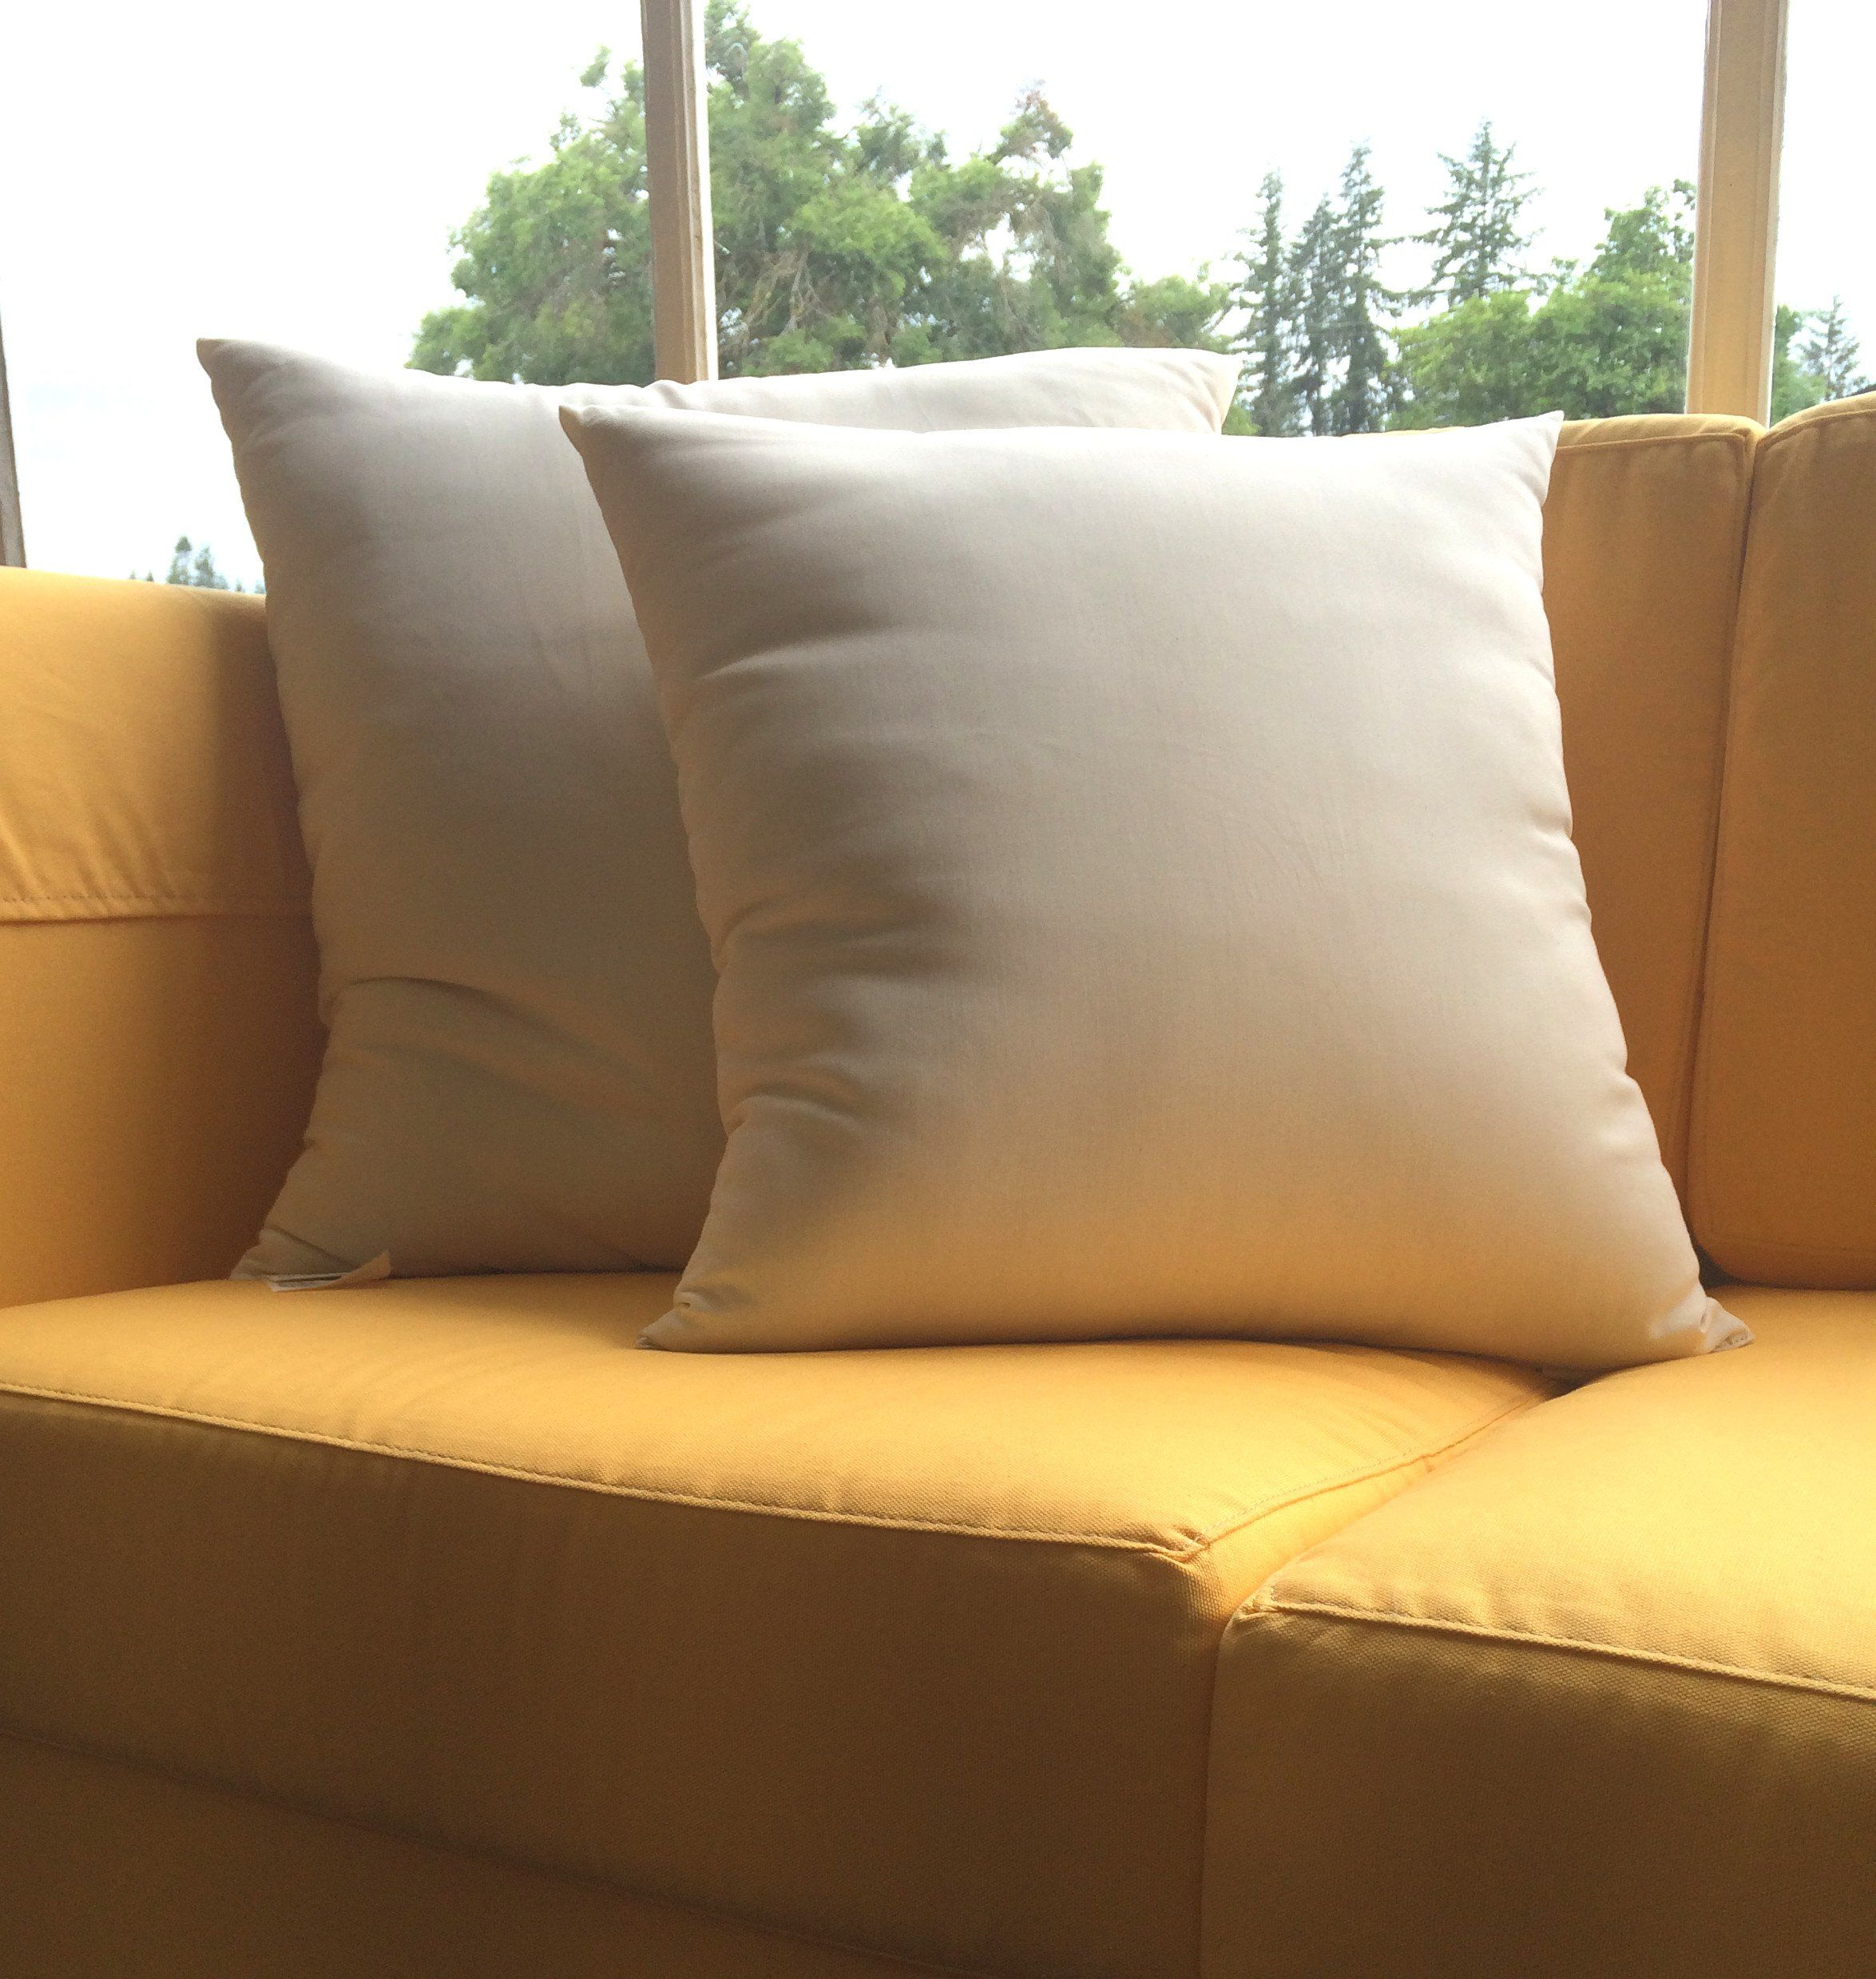 Throw Pillows For Sofa: All Wool Natural Couch & Sofa Throw Pillows: Eco Home